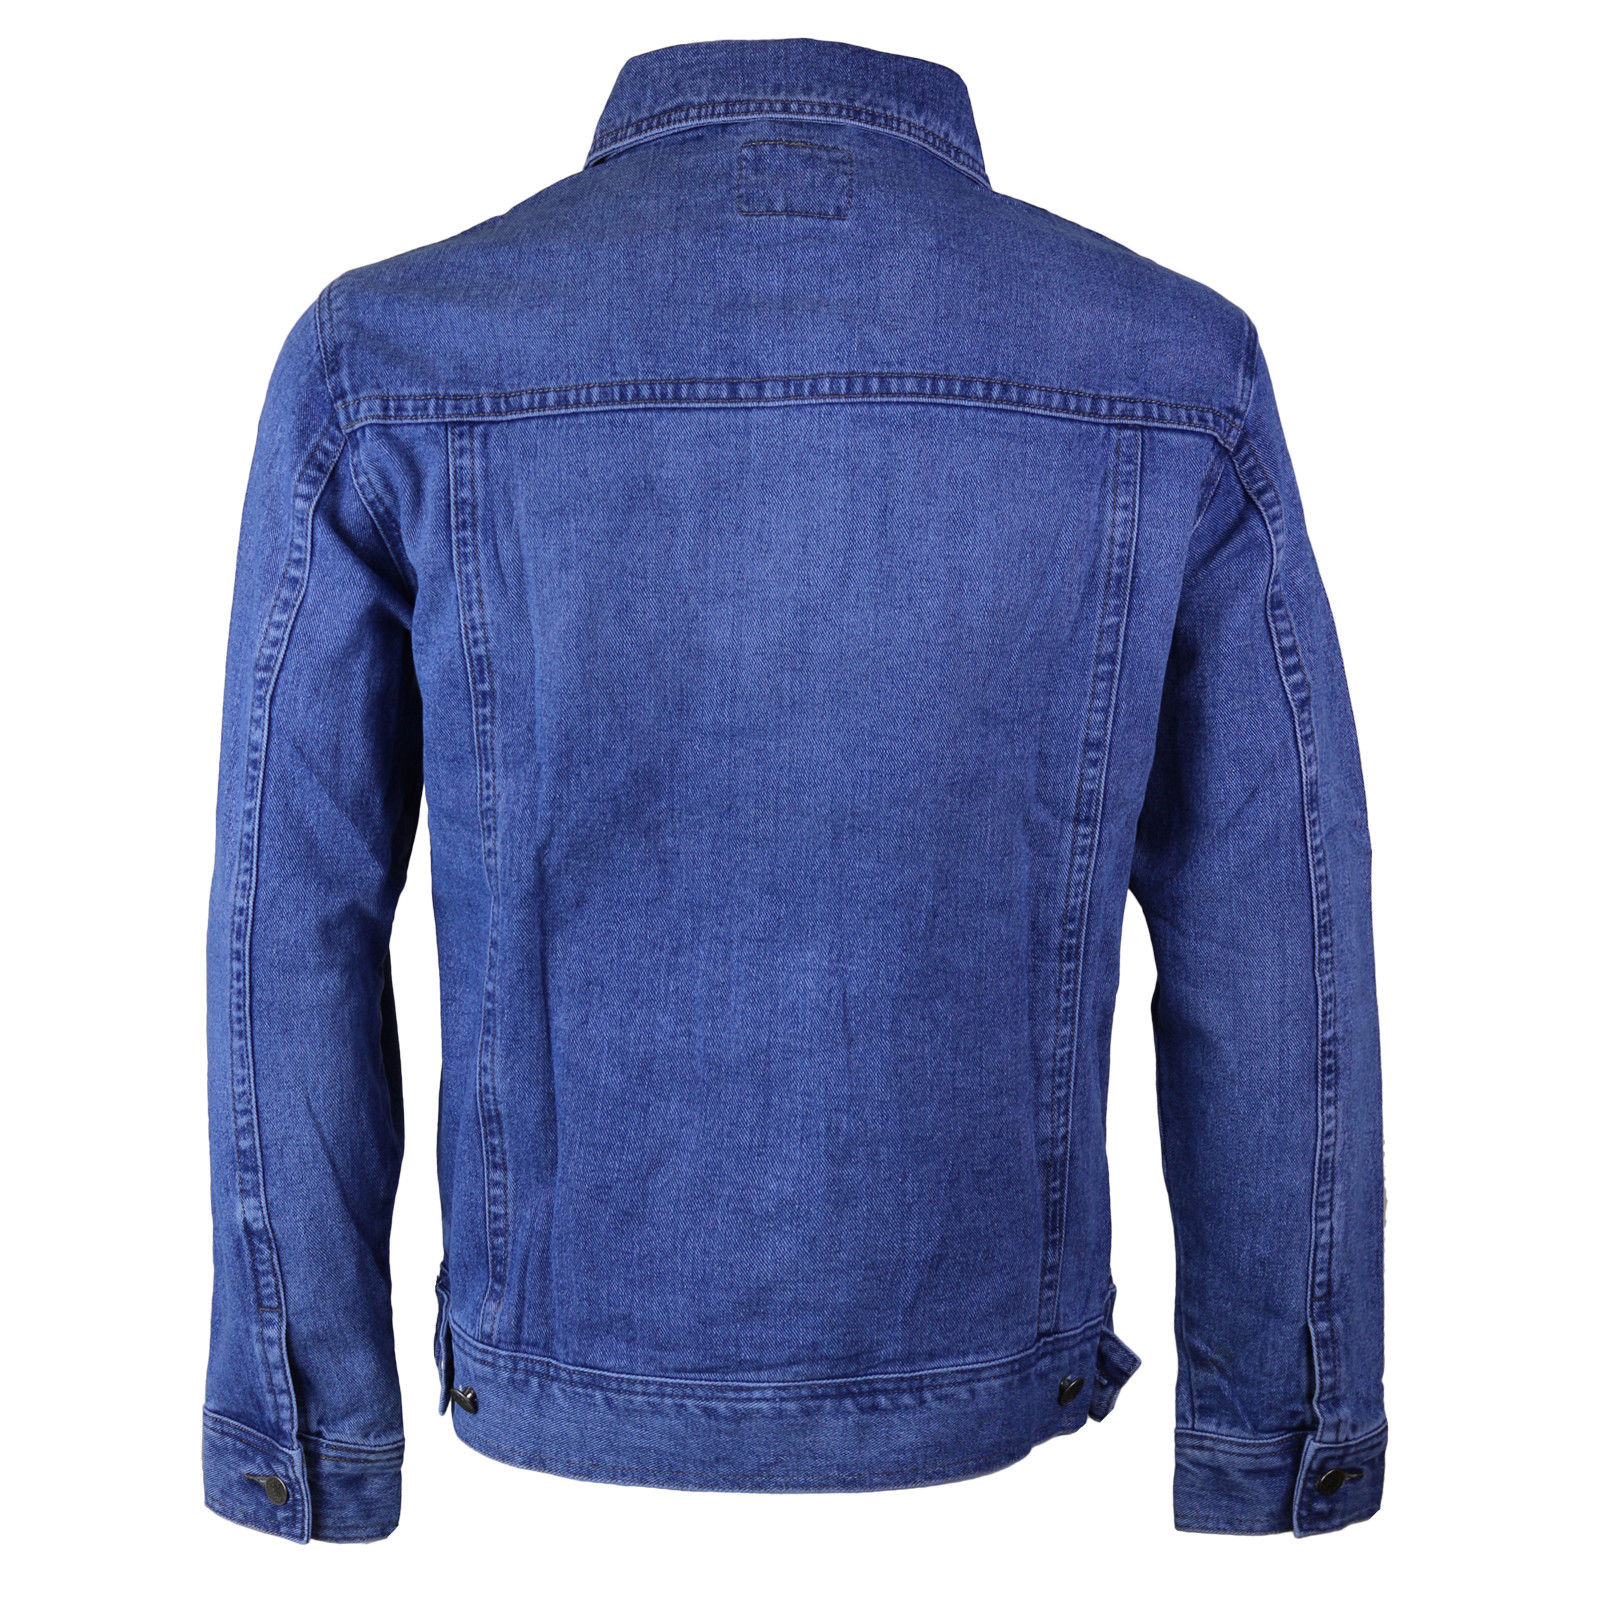 thumbnail 6 - Wacky-Jeans-Men-039-s-Classic-Premium-Cotton-Button-Up-Denim-Jean-Jacket-Blue